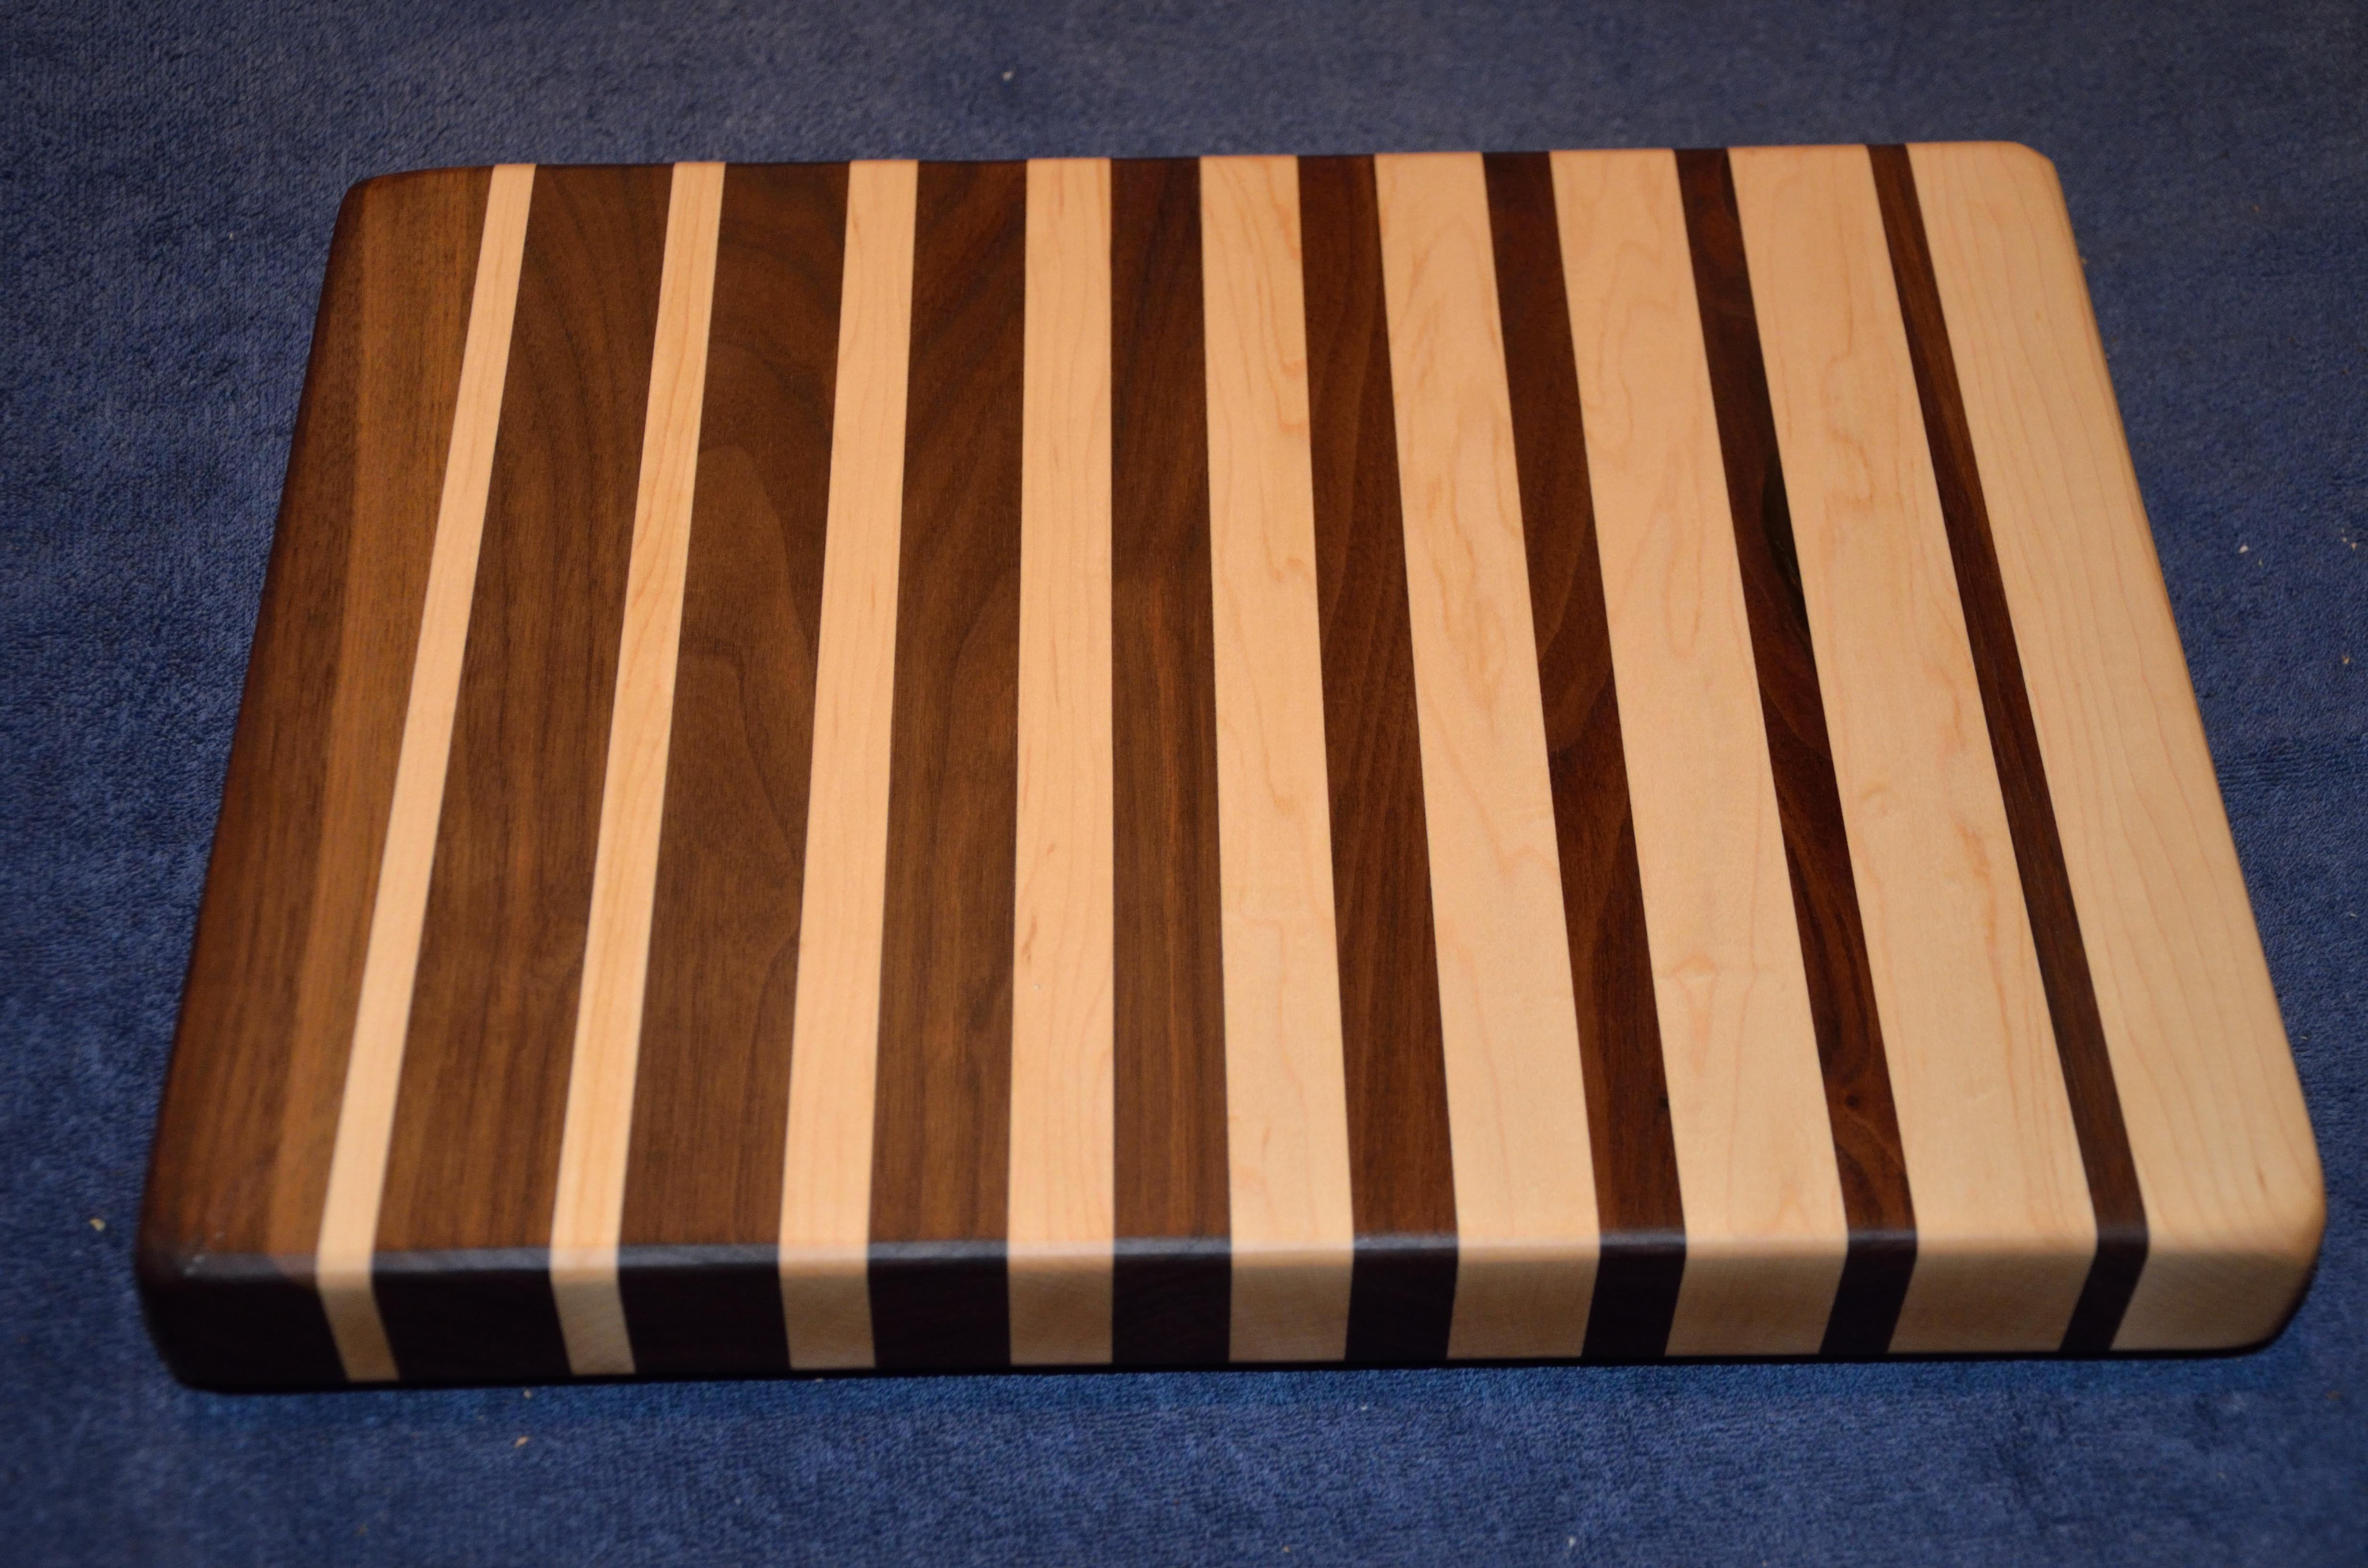 Scrap Offcut Projects Woodworking